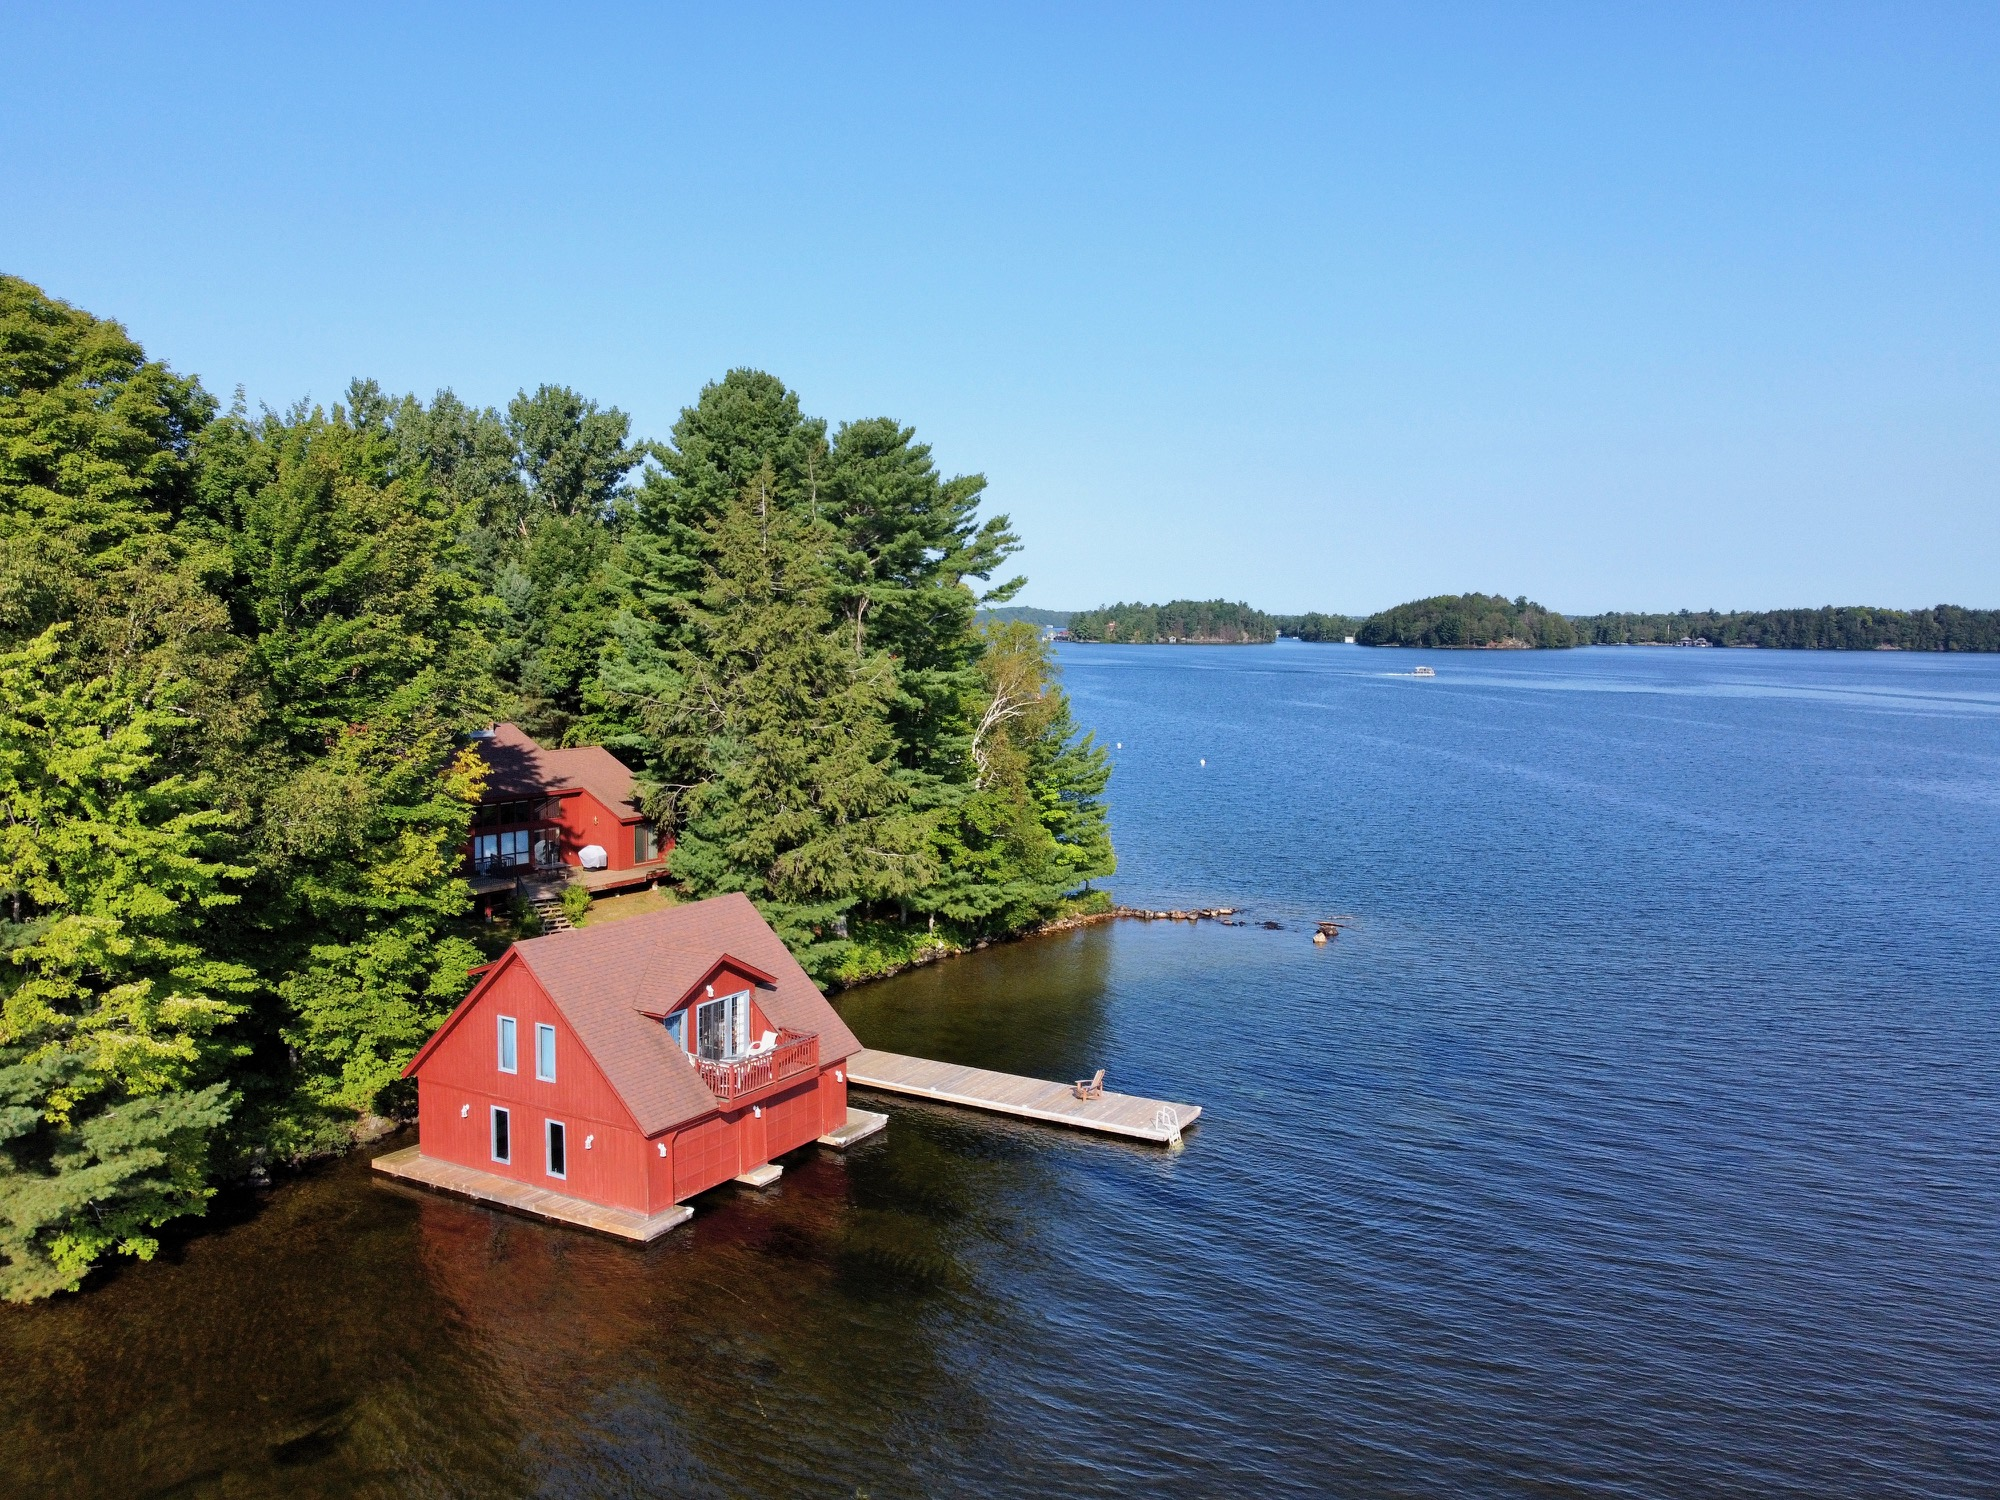 Lake Rosseau - South Rosseau with Incredible Privacy, Views, & Location